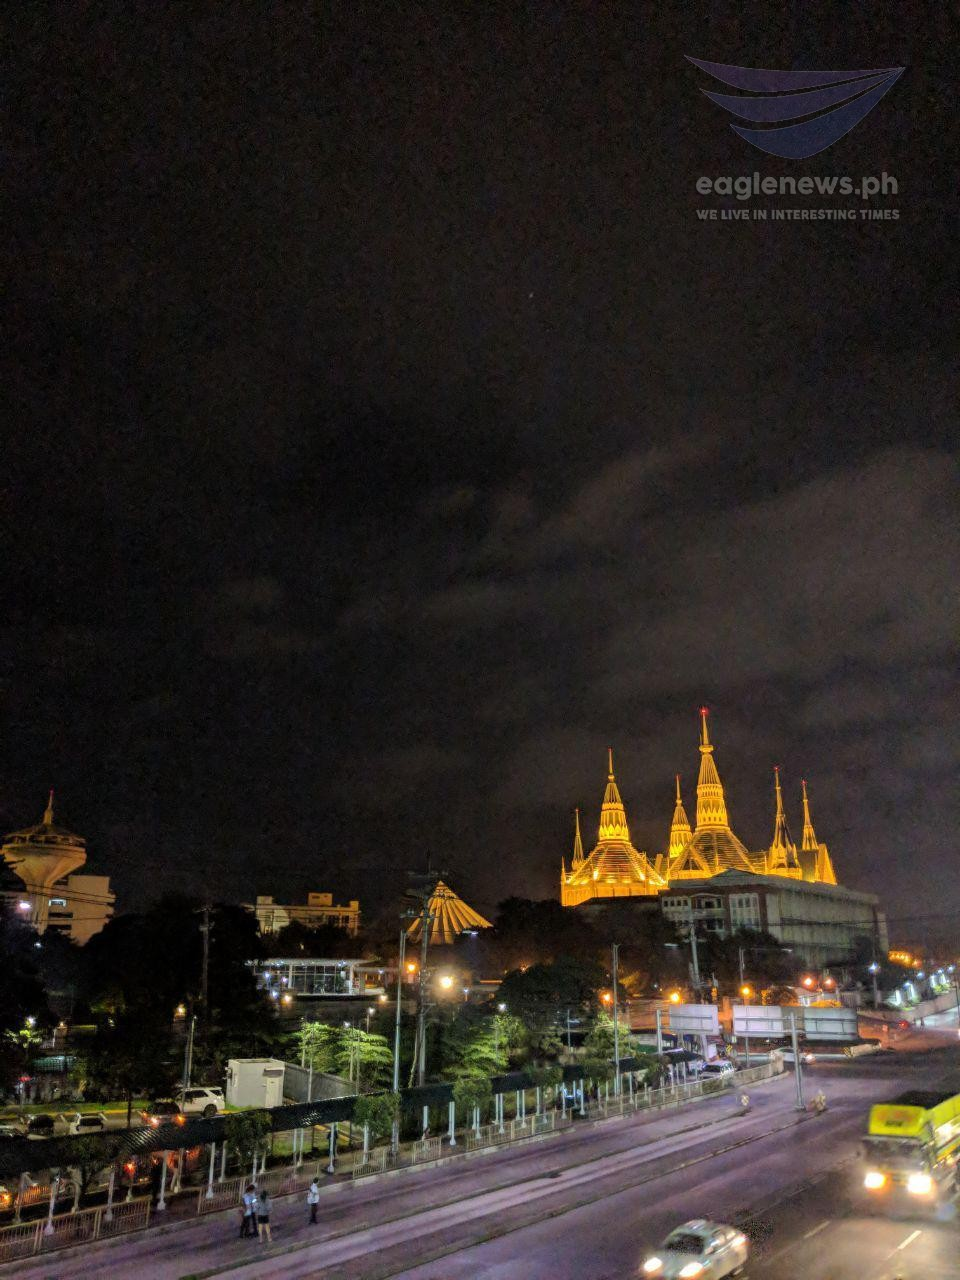 In Photos The Iglesia Ni Cristo Central Temple Like A Brilliant Jewel In The Night Sky